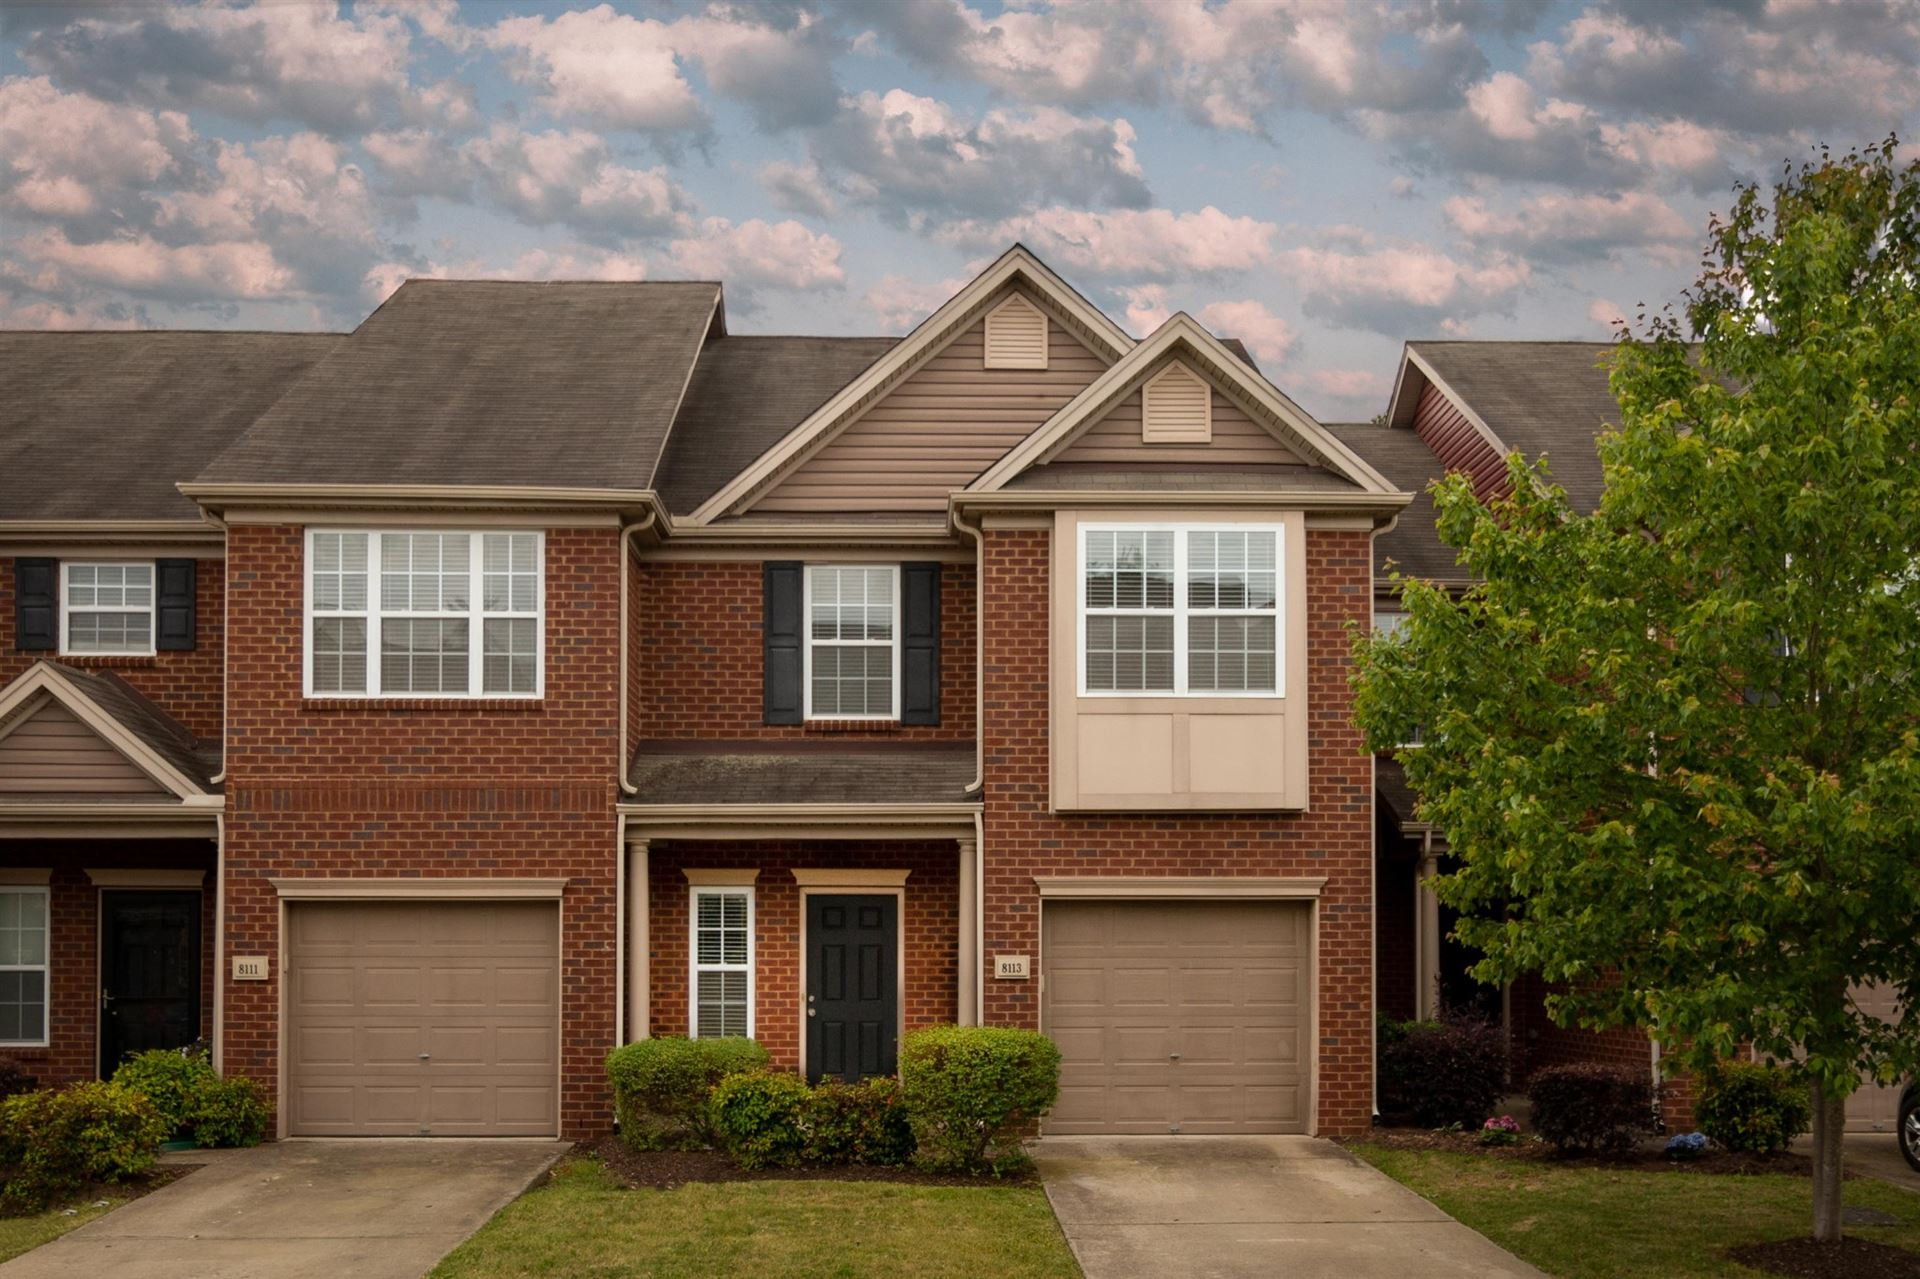 Photo of 8113 Valley Oak Dr, Brentwood, TN 37027 (MLS # 2151086)